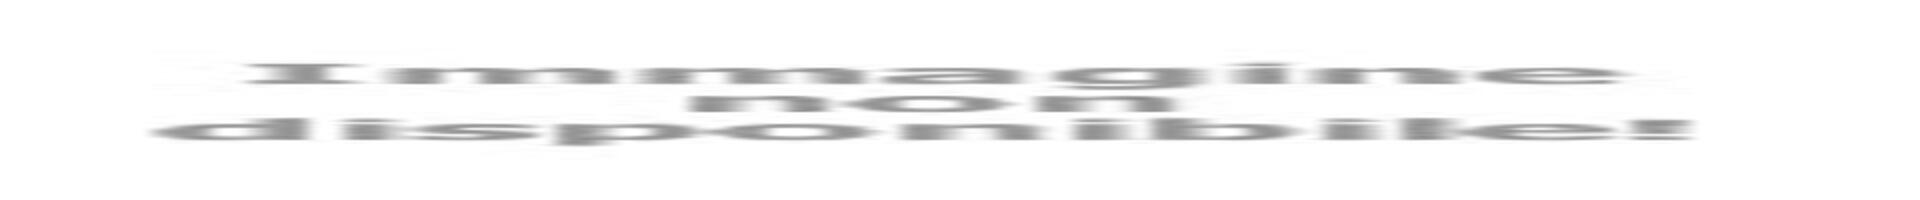 blumenhotel it speciale-black-friday-per-vacanze-estive-a-rimini 015